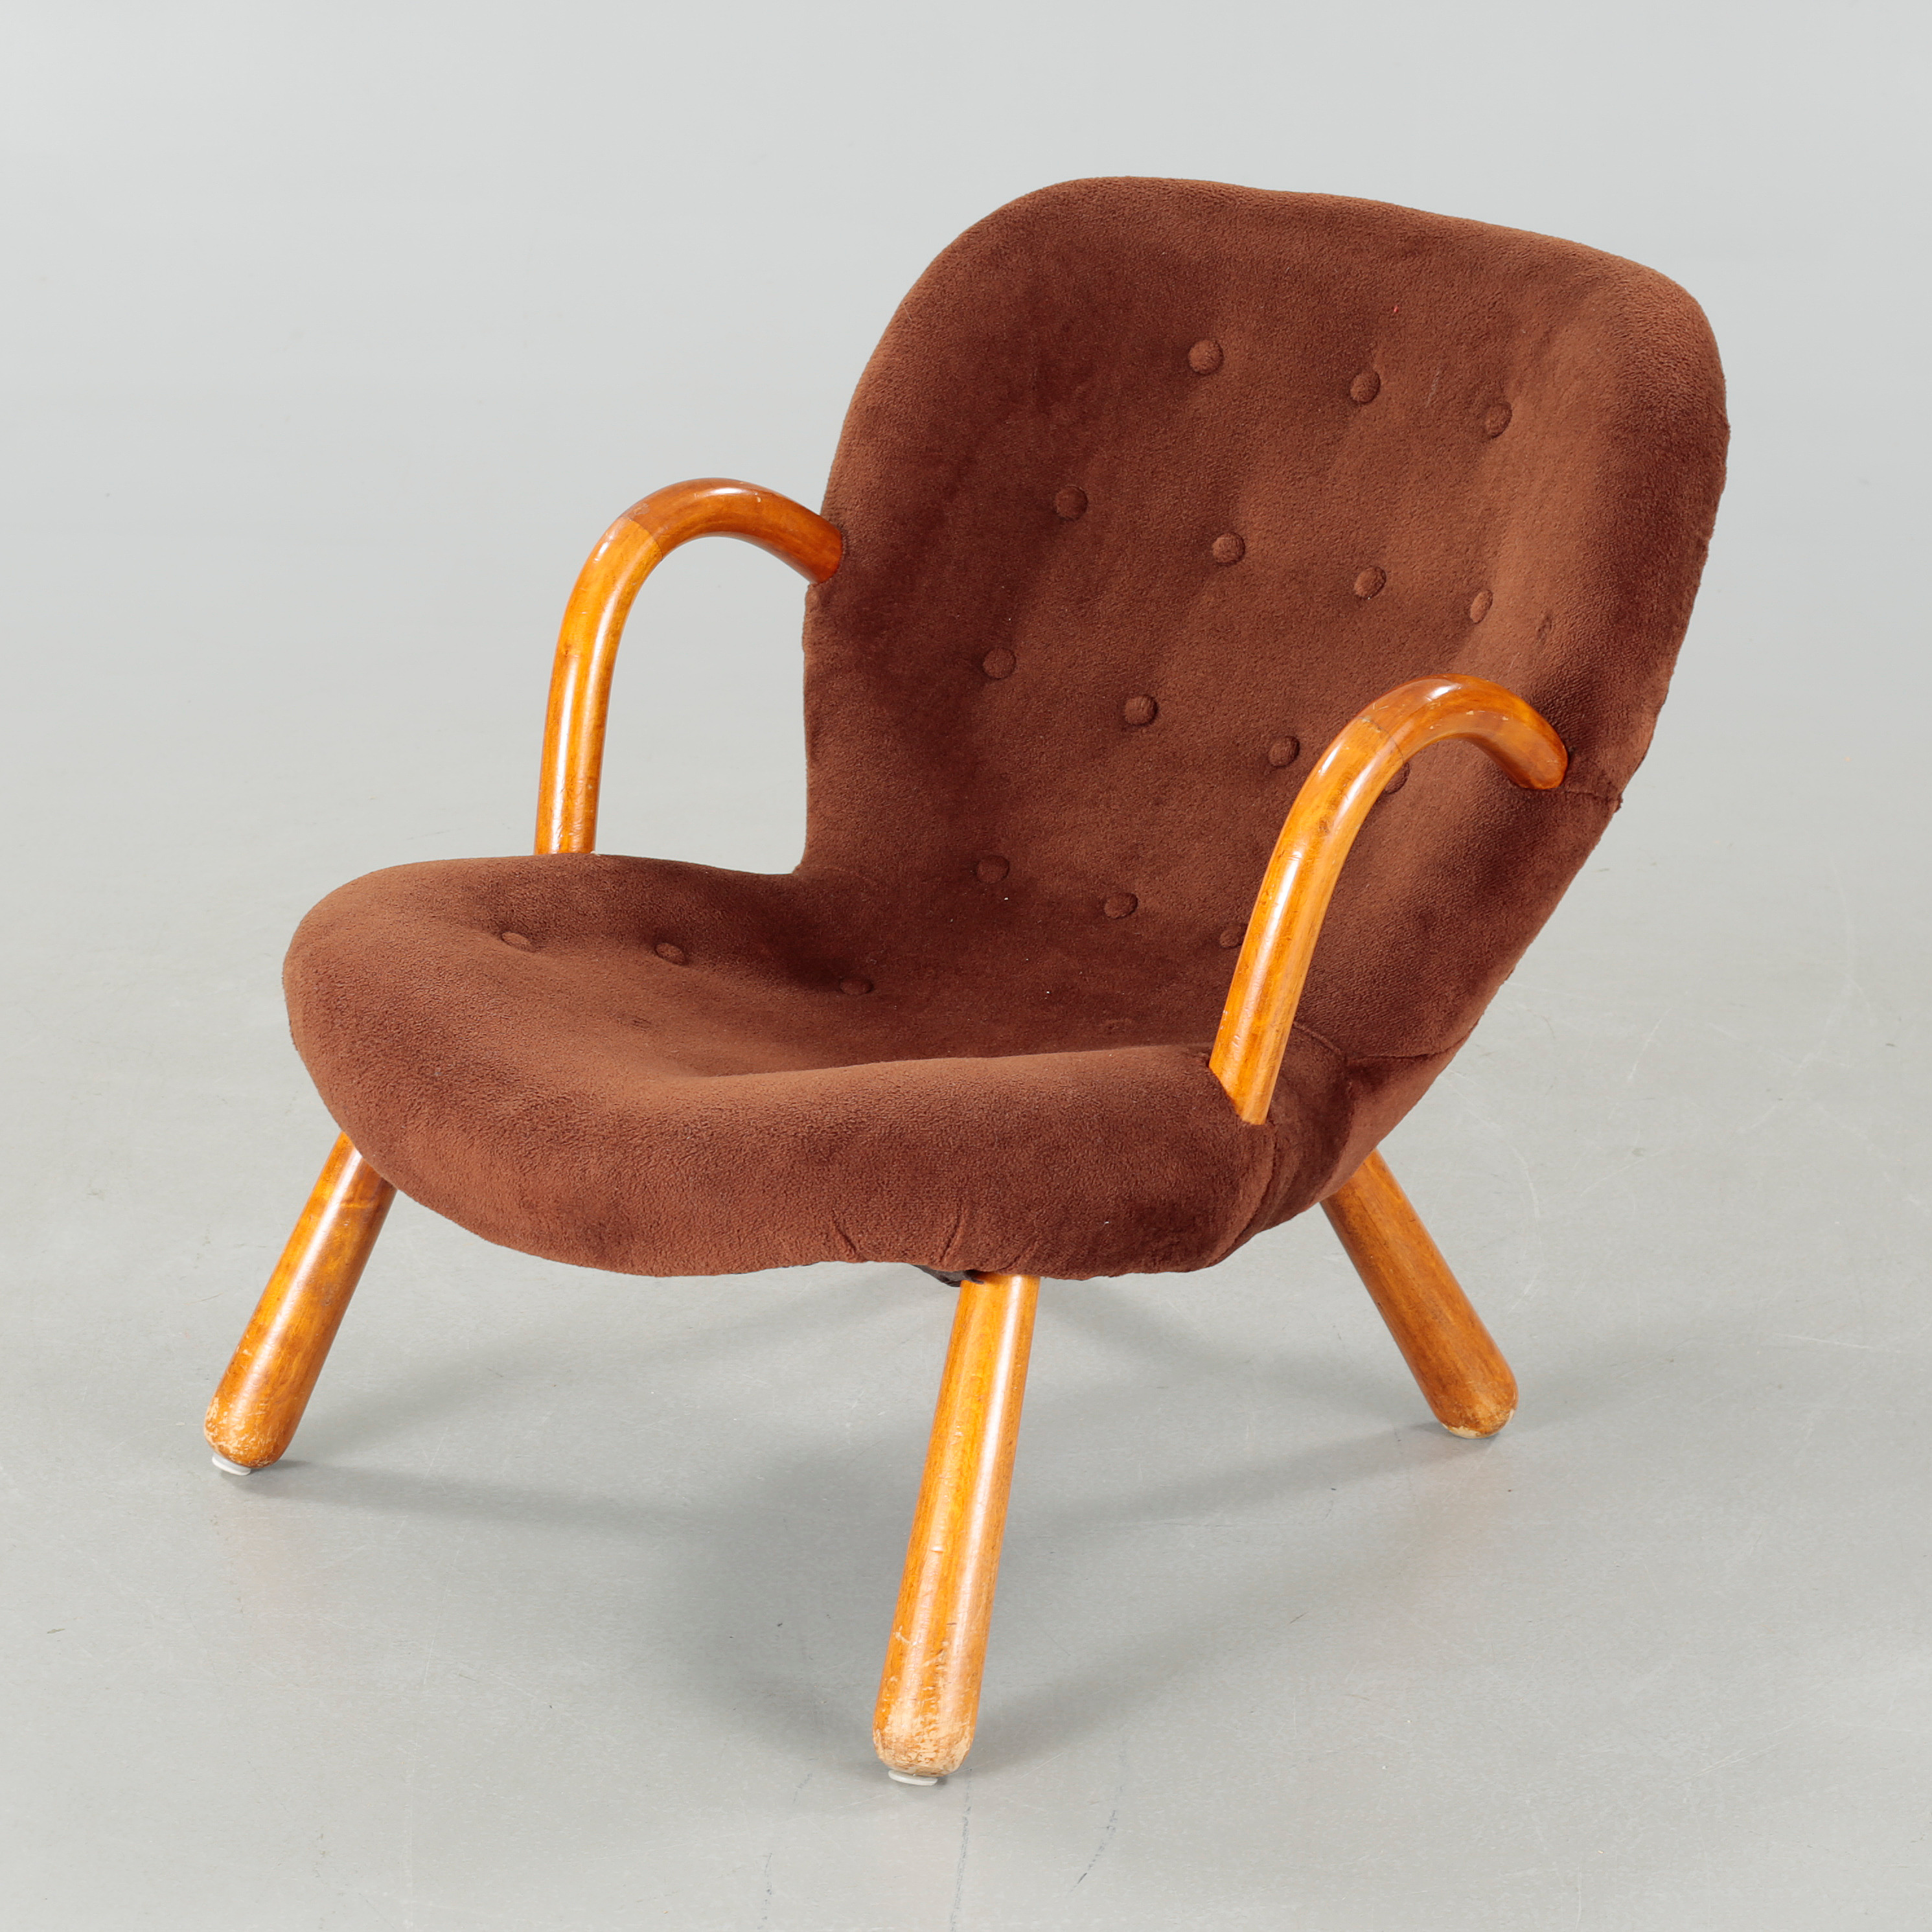 A mid 20th century chair, model \